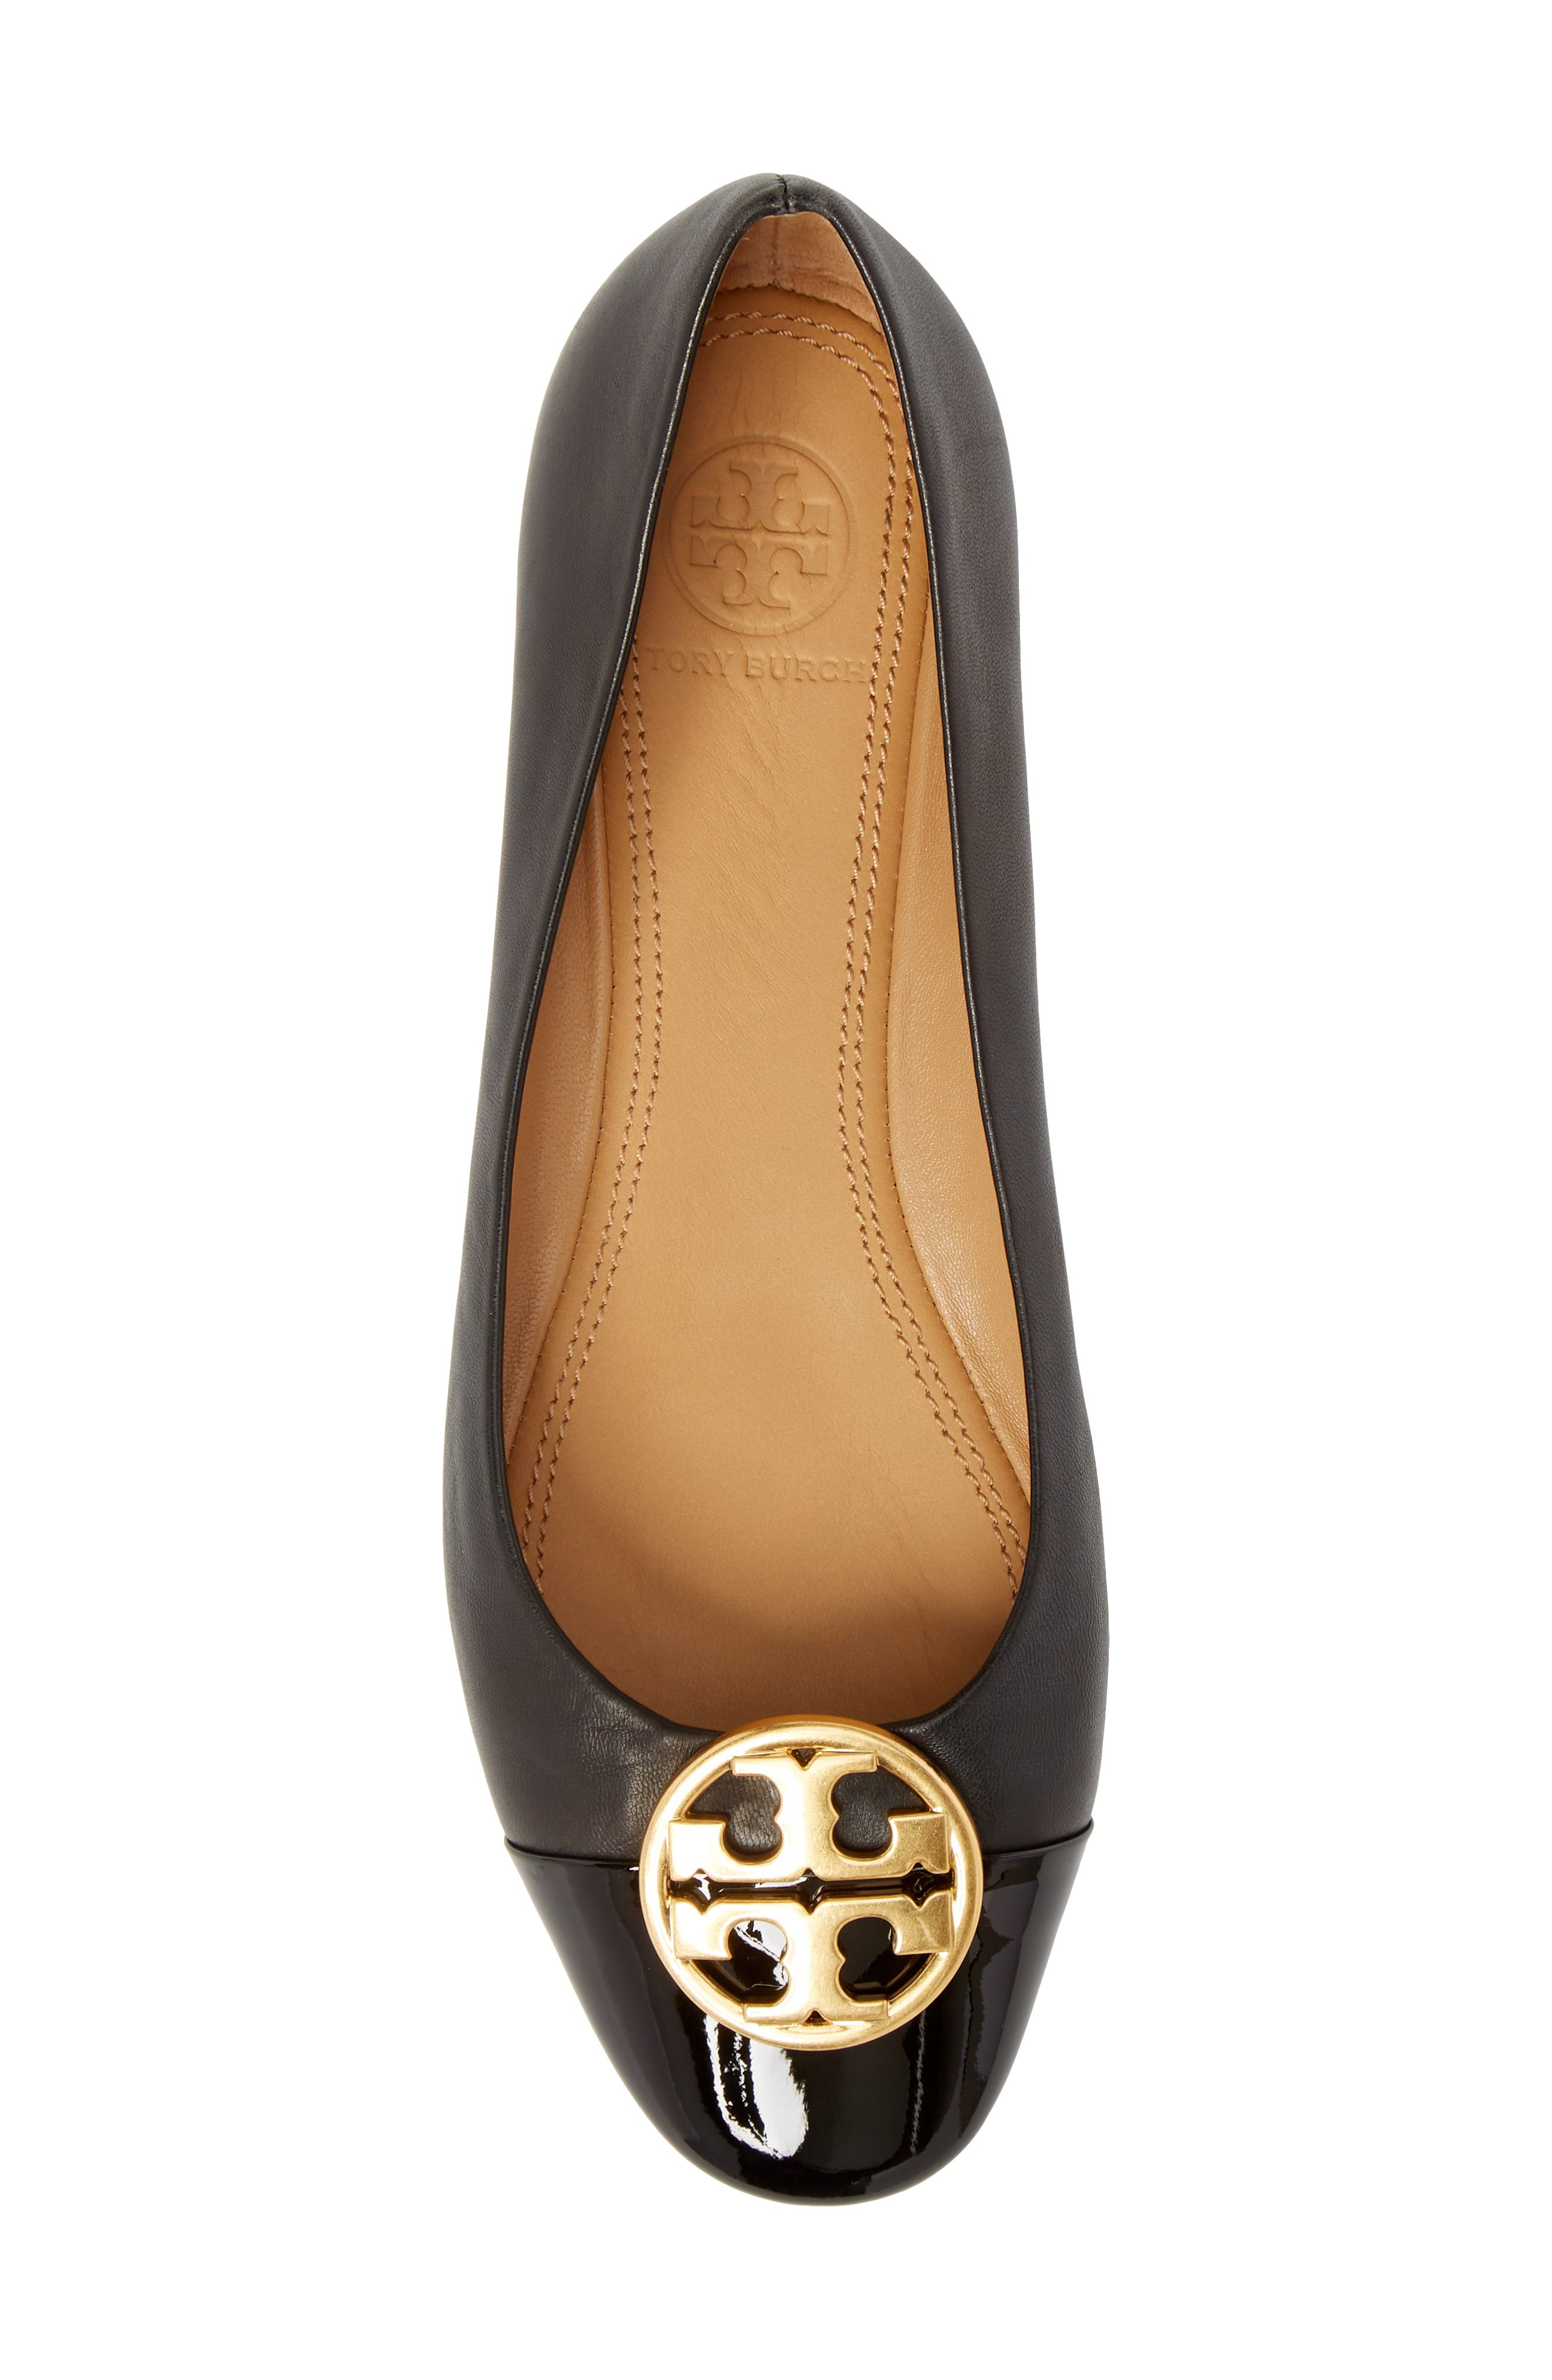 TORY BURCH, Chelsea Cap Toe Ballet Flat, Alternate thumbnail 5, color, BLACK